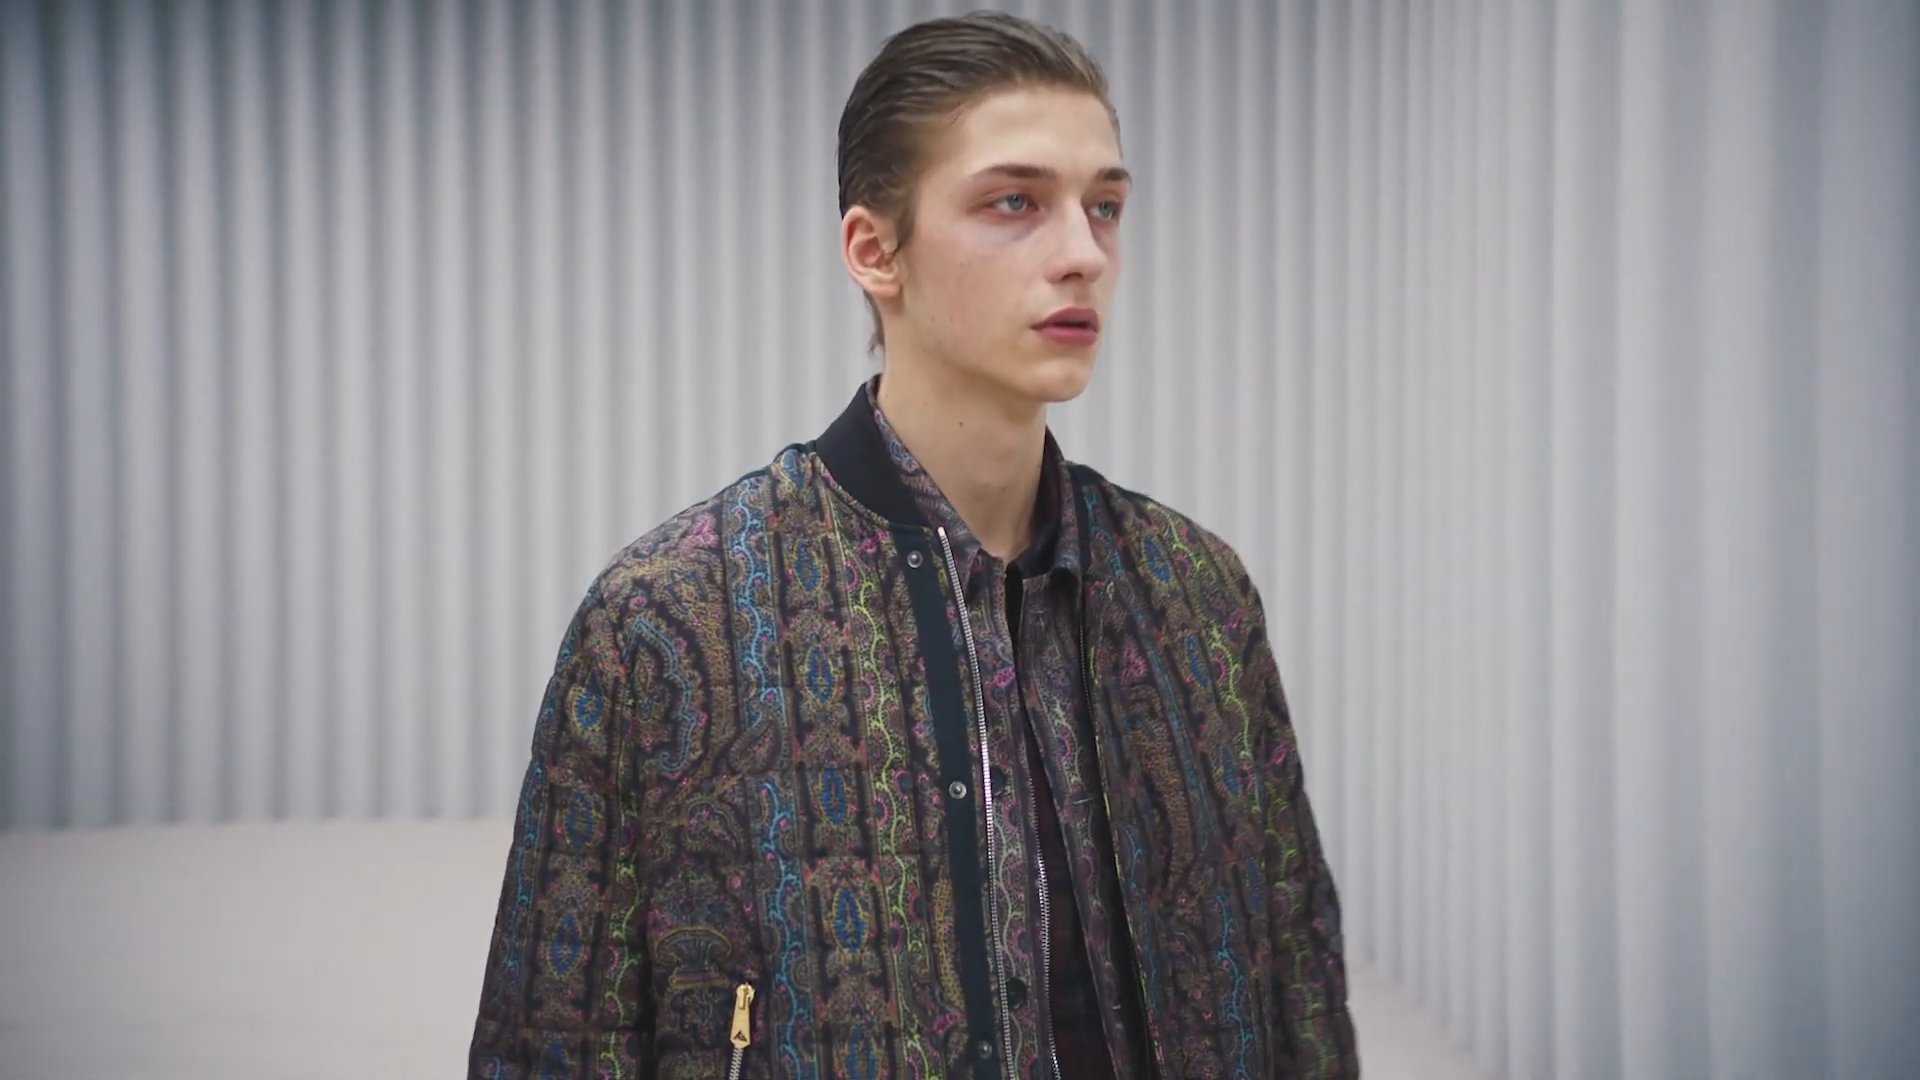 Paul Smith AW21 Paul Smith AW21 Vanity Teen Menswear & new faces magazine